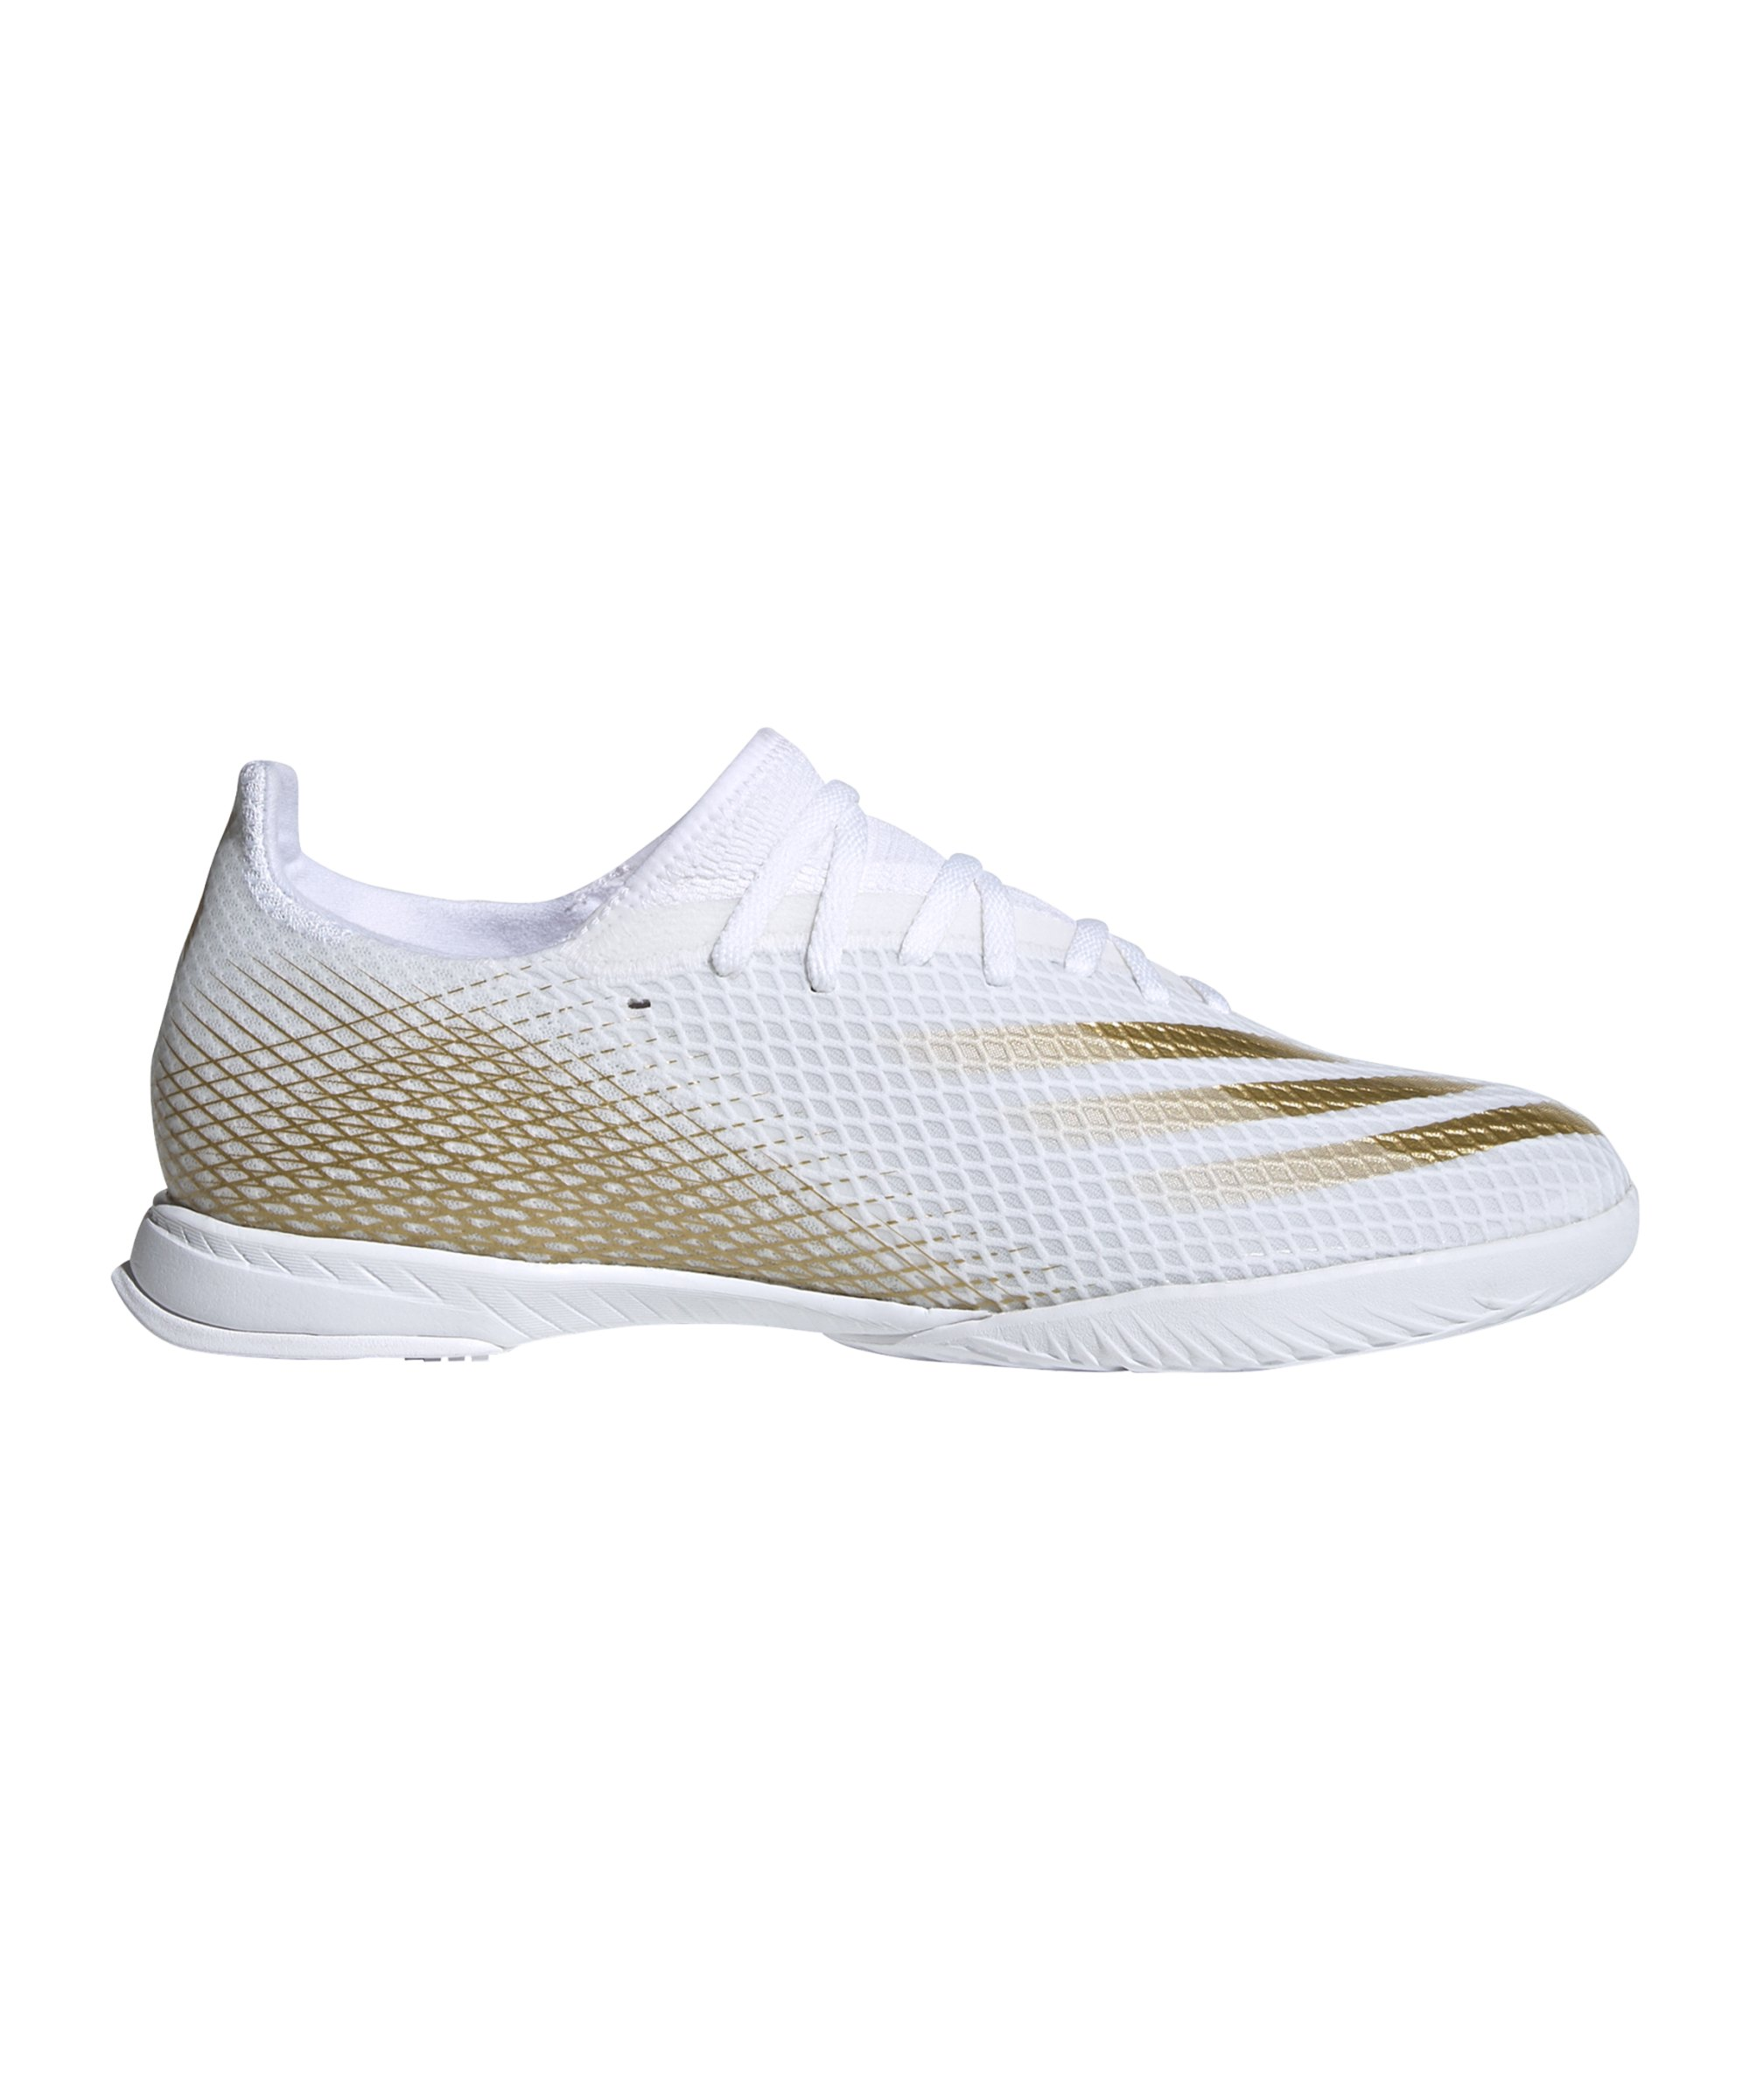 adidas X GHOSTED.3 IN Halle Inflight Weiss Gold - weiss